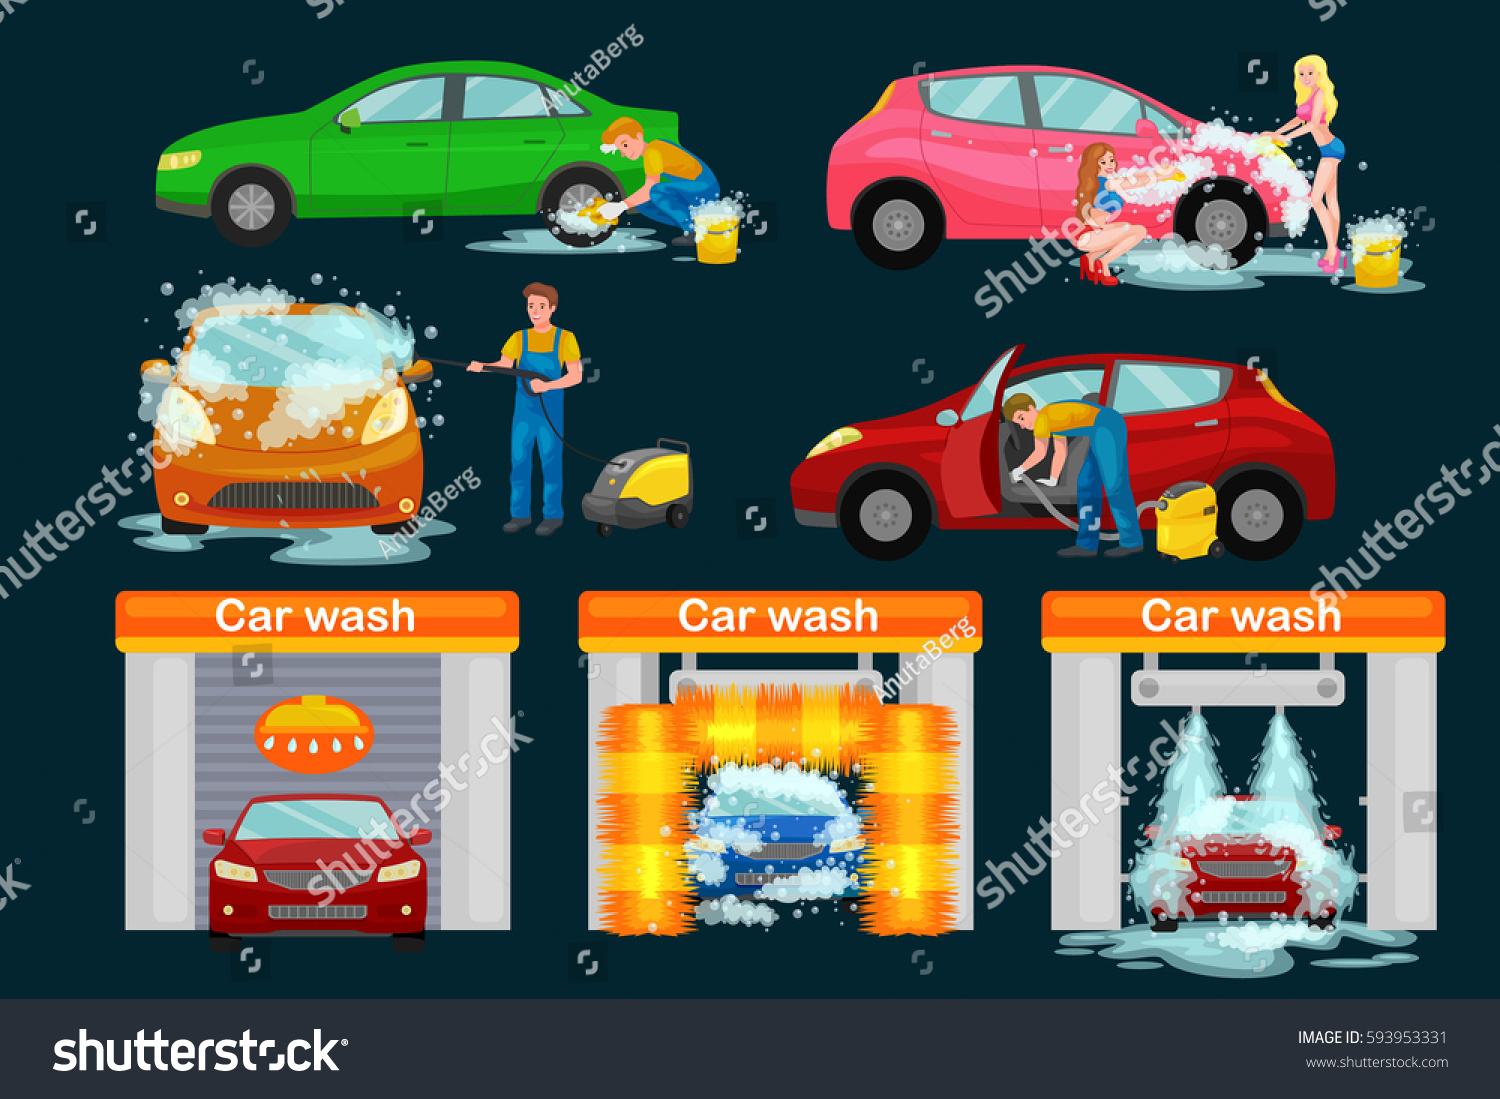 contactless car washing services bikini model stock illustration 593953331 shutterstock. Black Bedroom Furniture Sets. Home Design Ideas